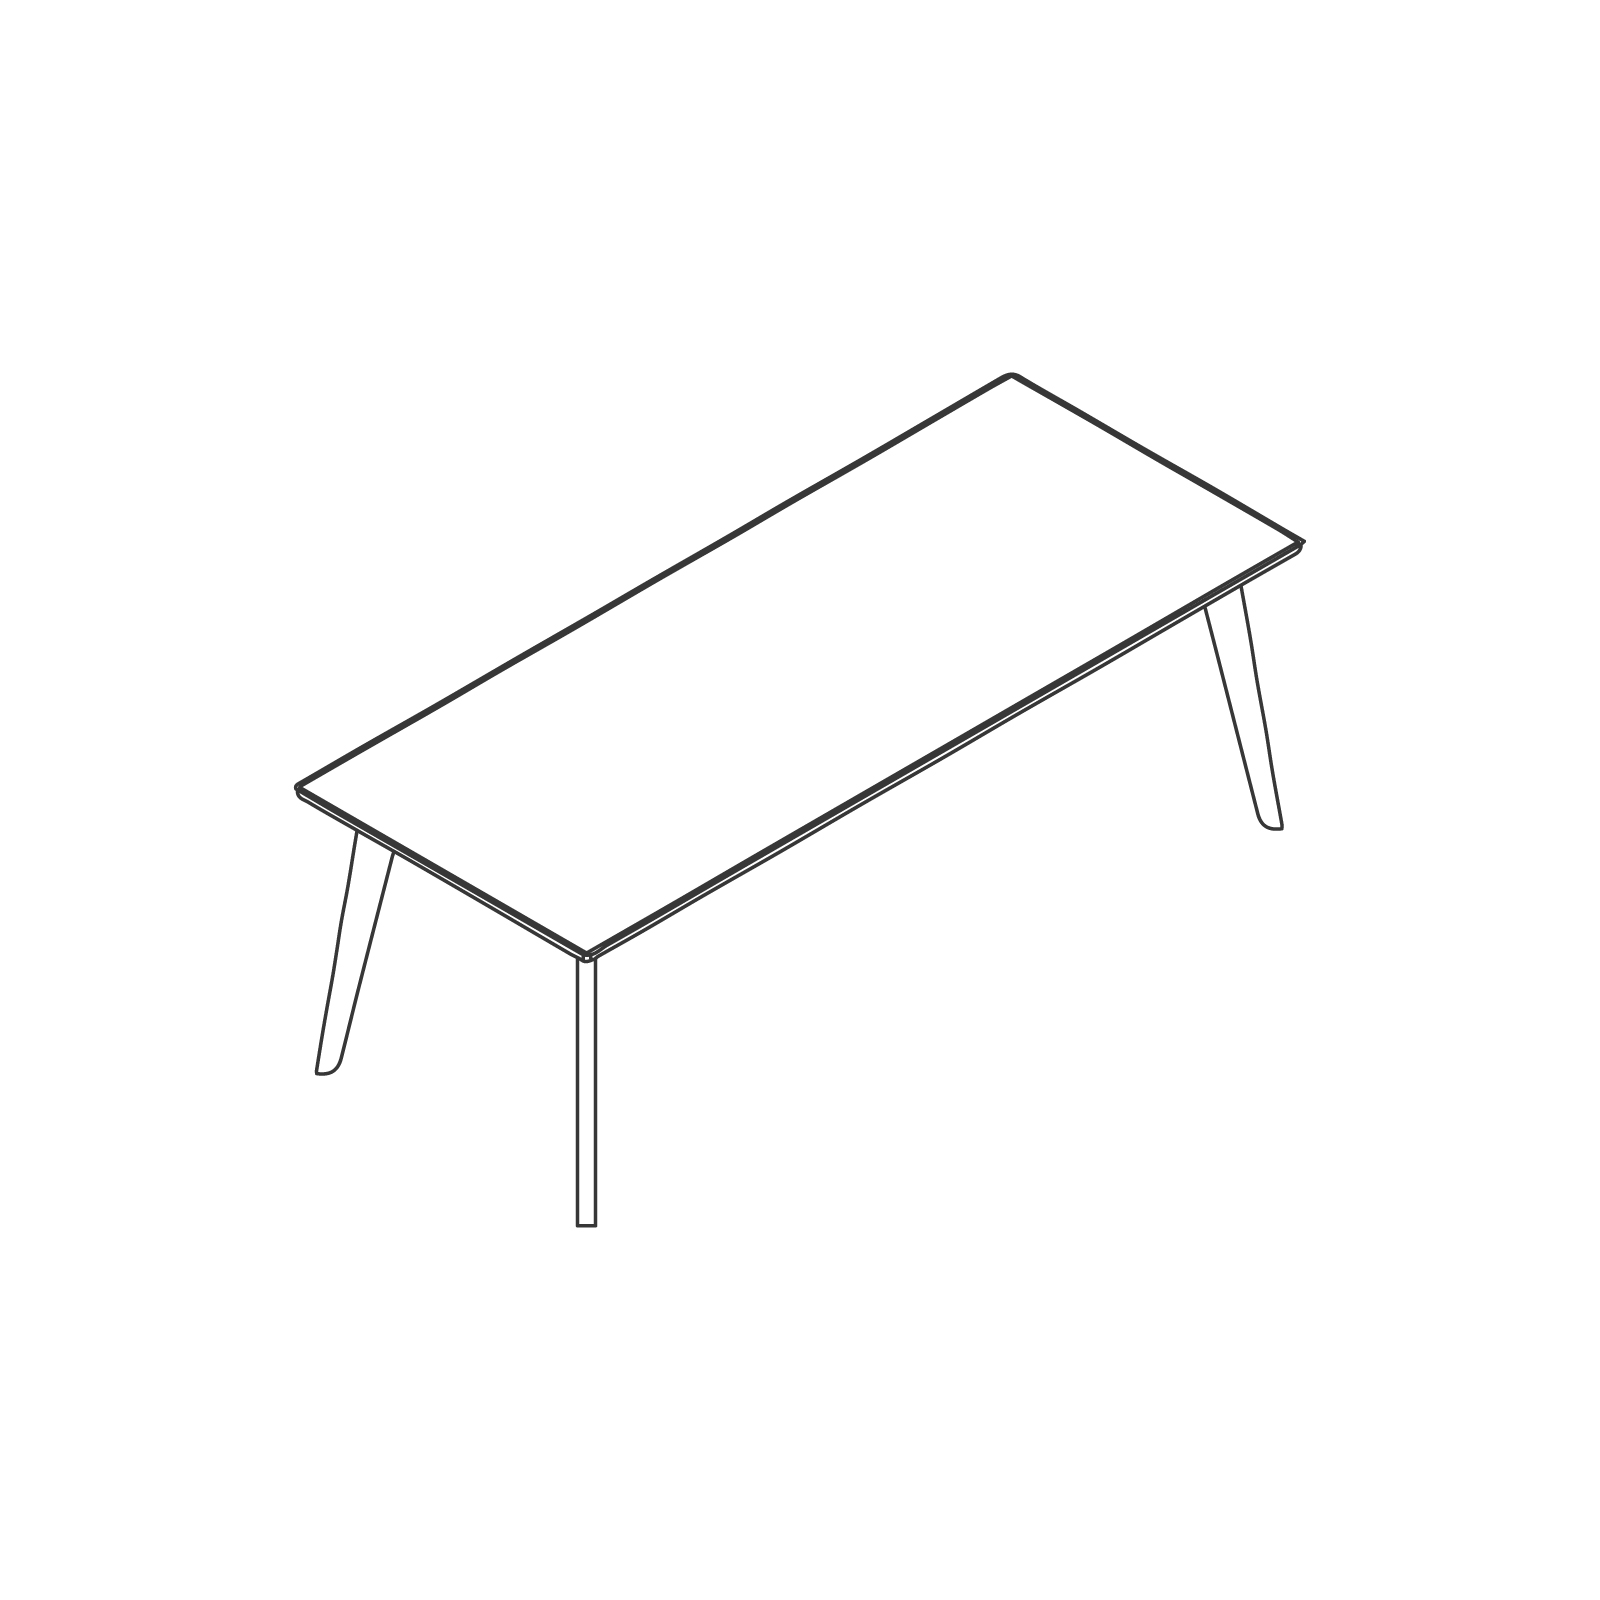 A line drawing of Dalby Conference Table–Rectangular.